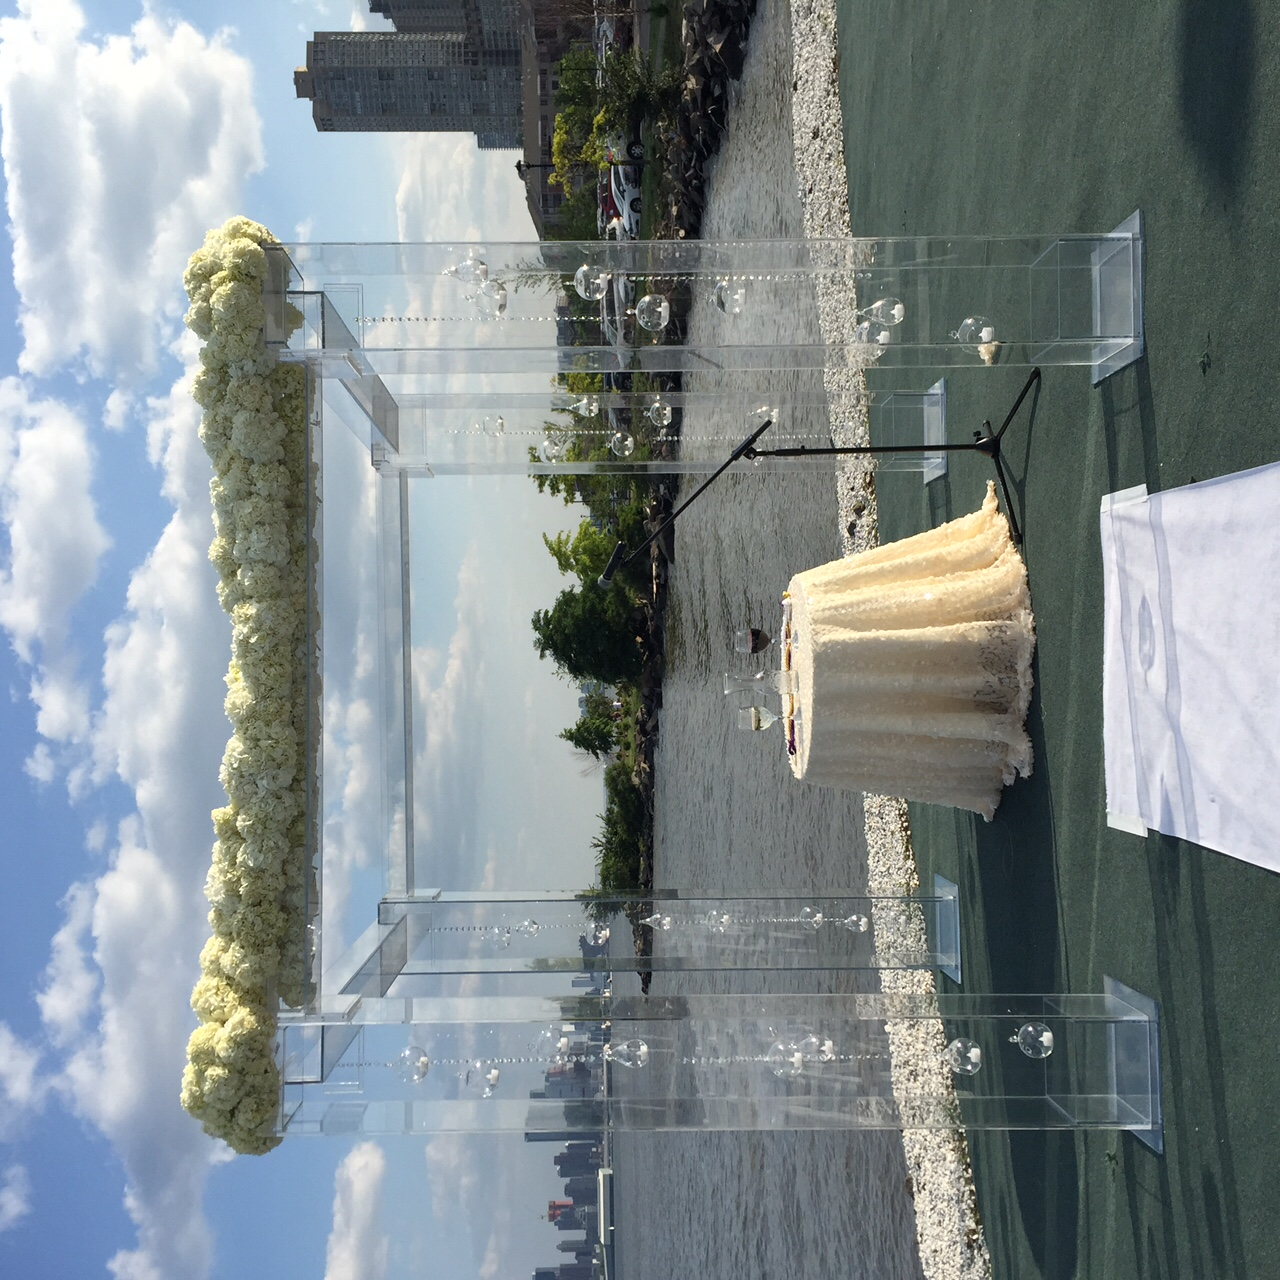 Chuppah-lucite-acrylic-front view-waterside restaurant decorated